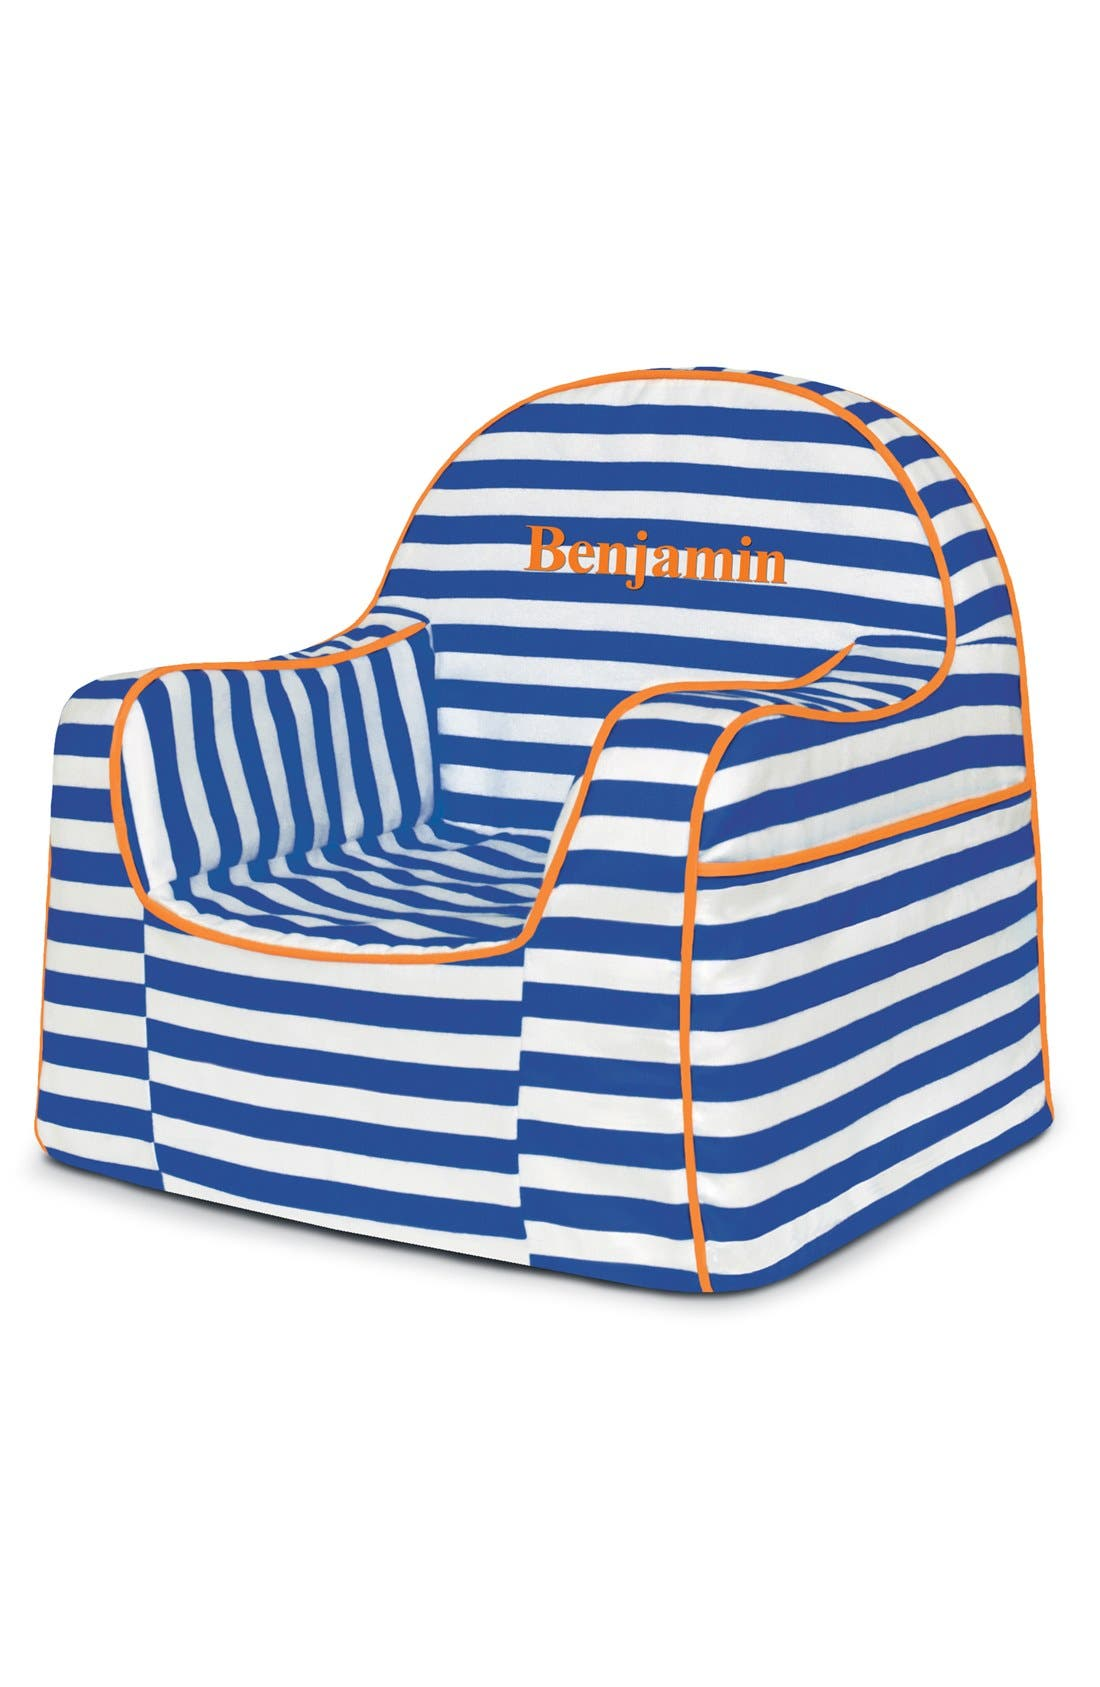 'Personalized Little Reader' Chair,                         Main,                         color, 405